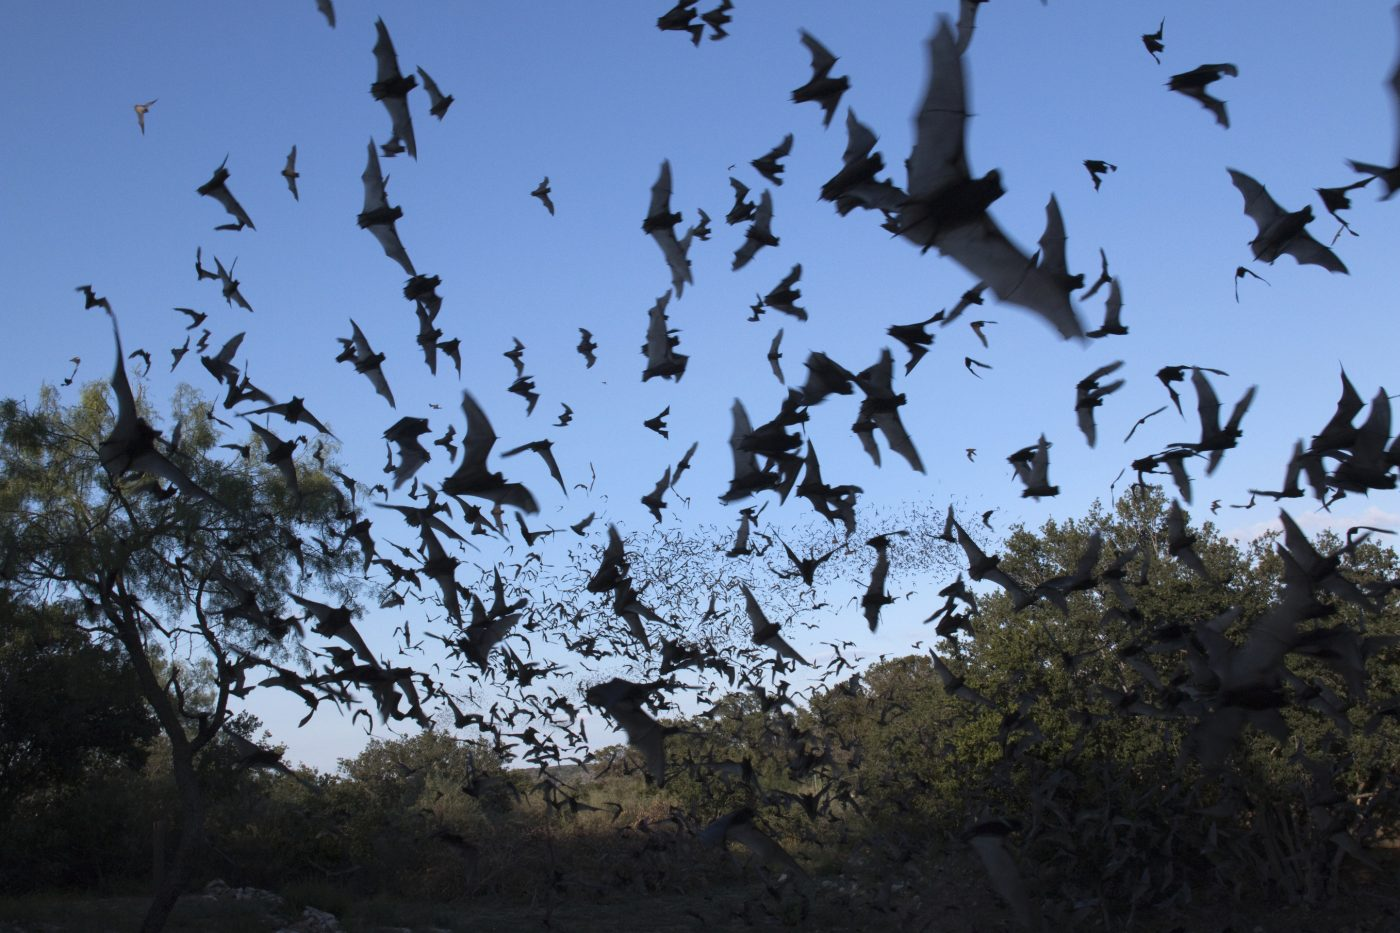 Clouds of Mexican free-tailed bats Texas